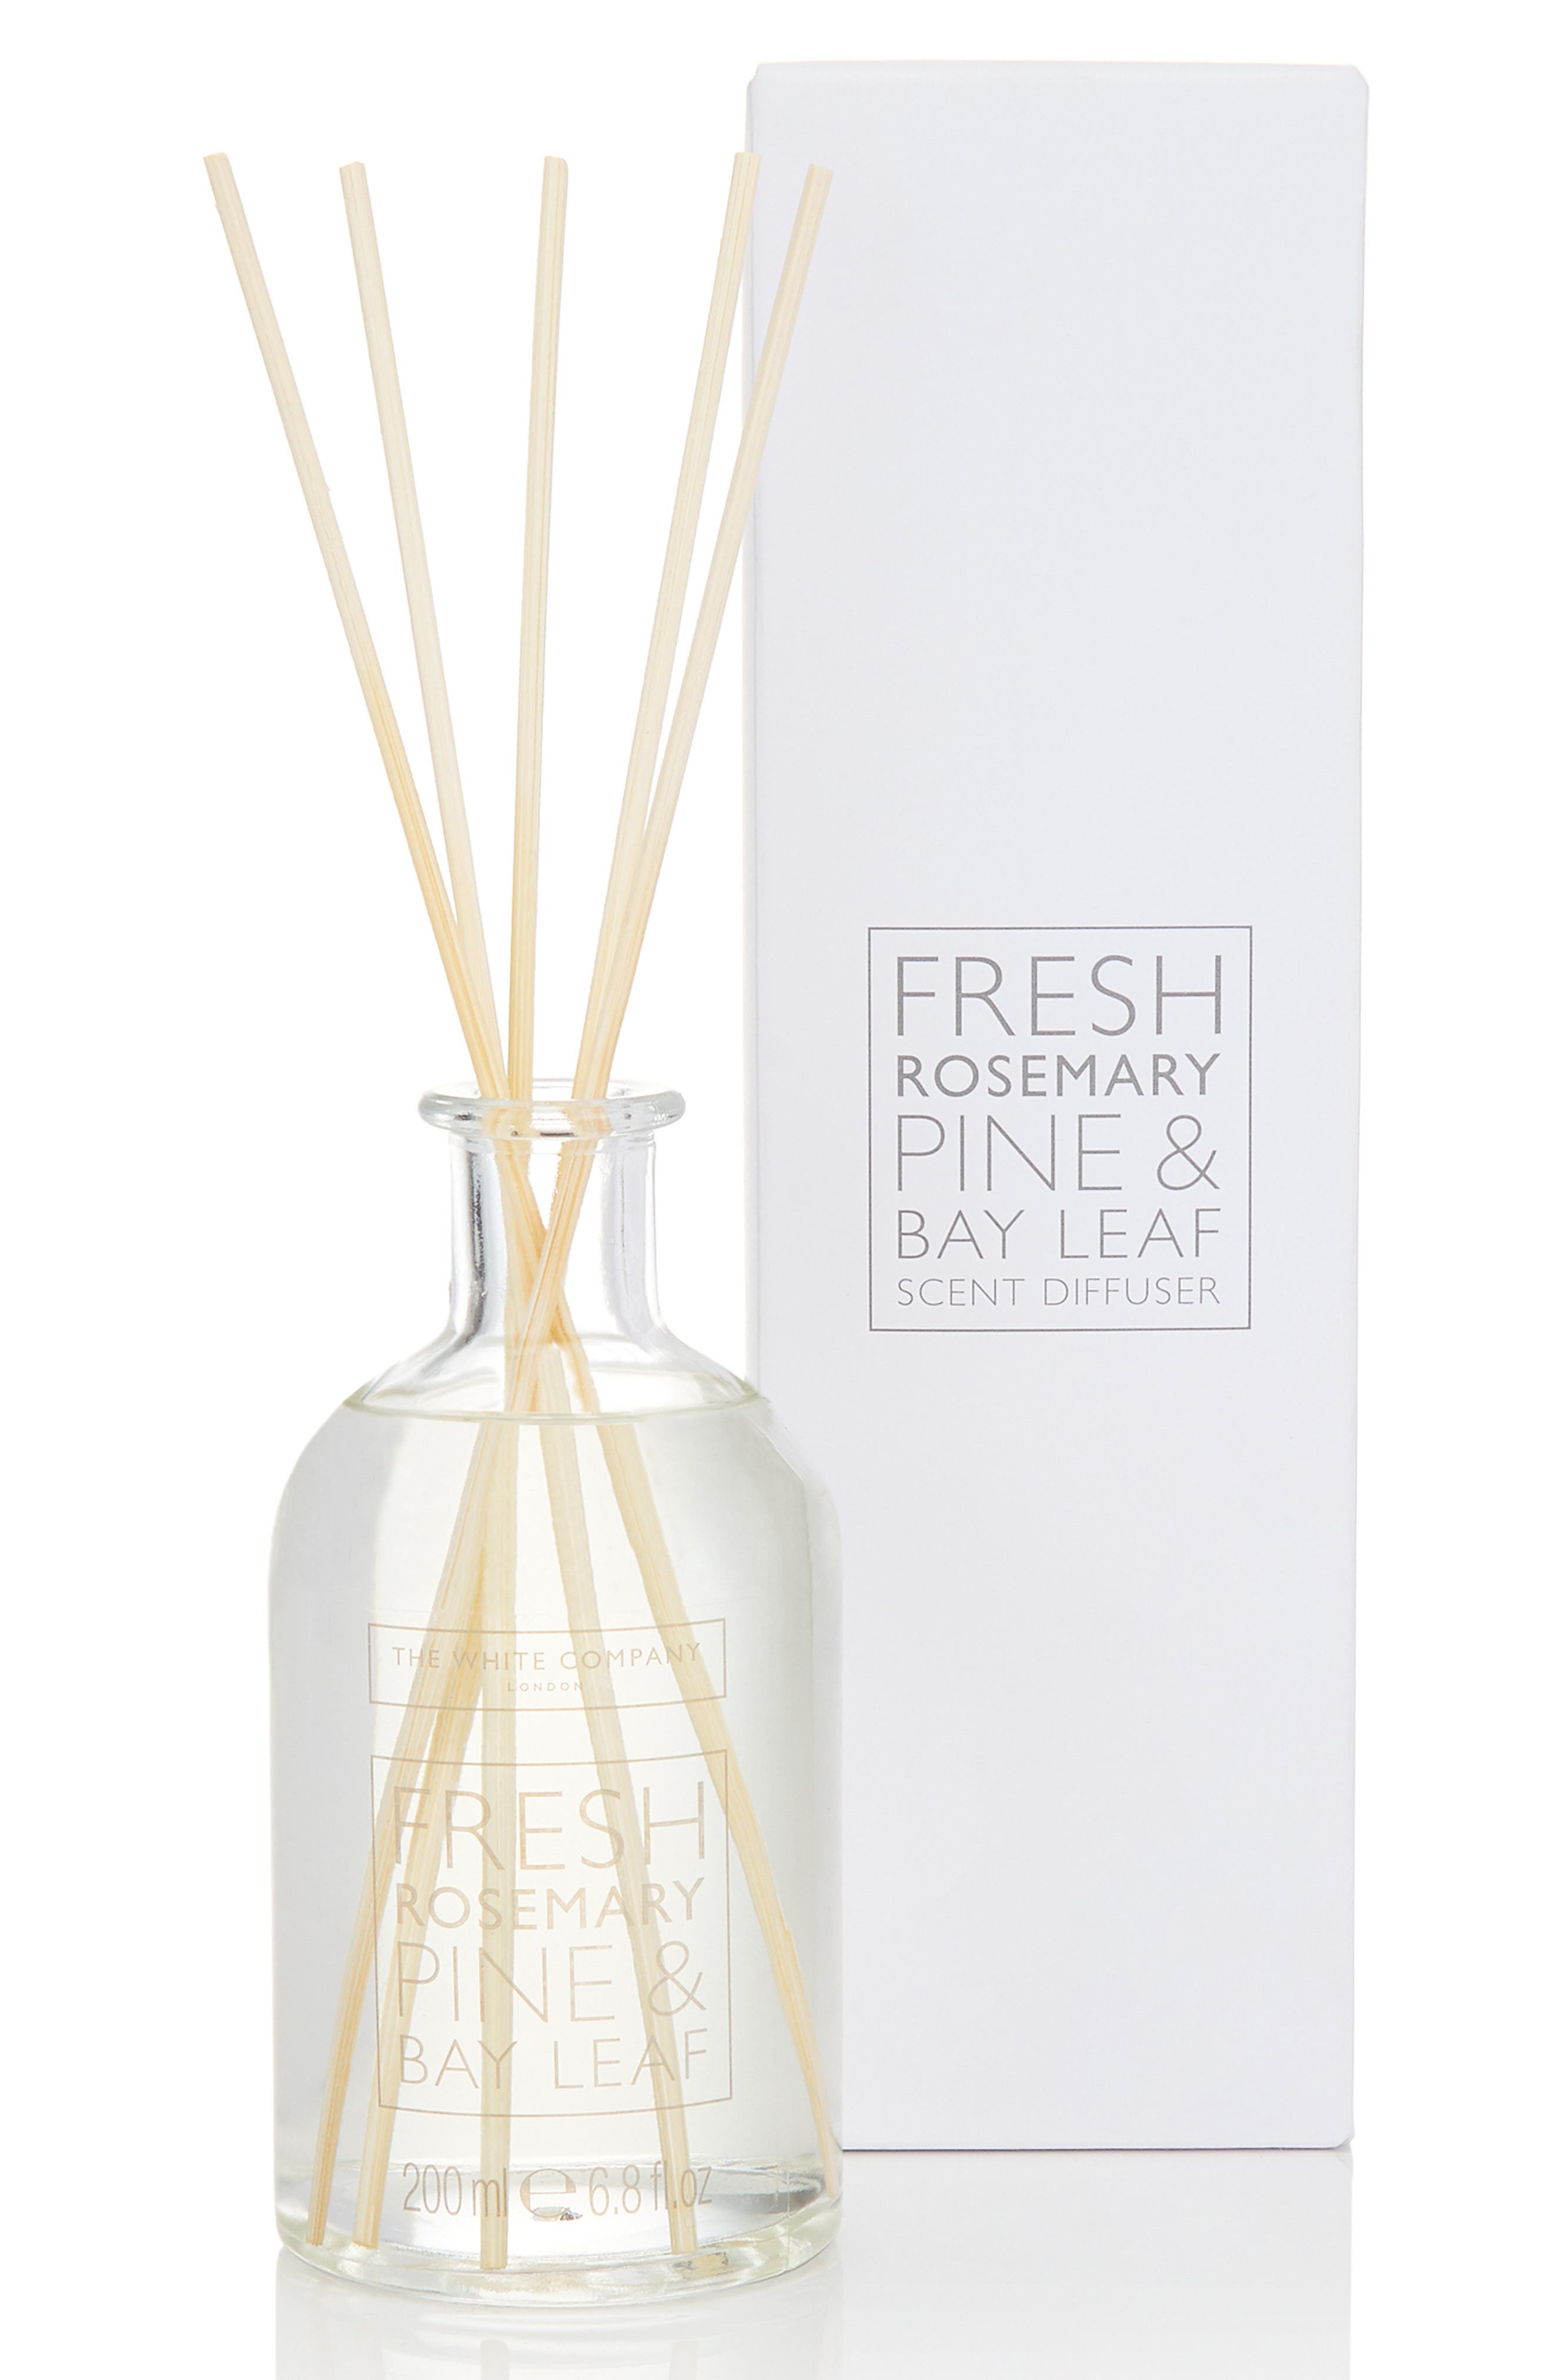 THE WHITE COMPANY,                             Home Fragrance Diffuser,                             Main thumbnail 1, color,                             FRESH ROSEMARY